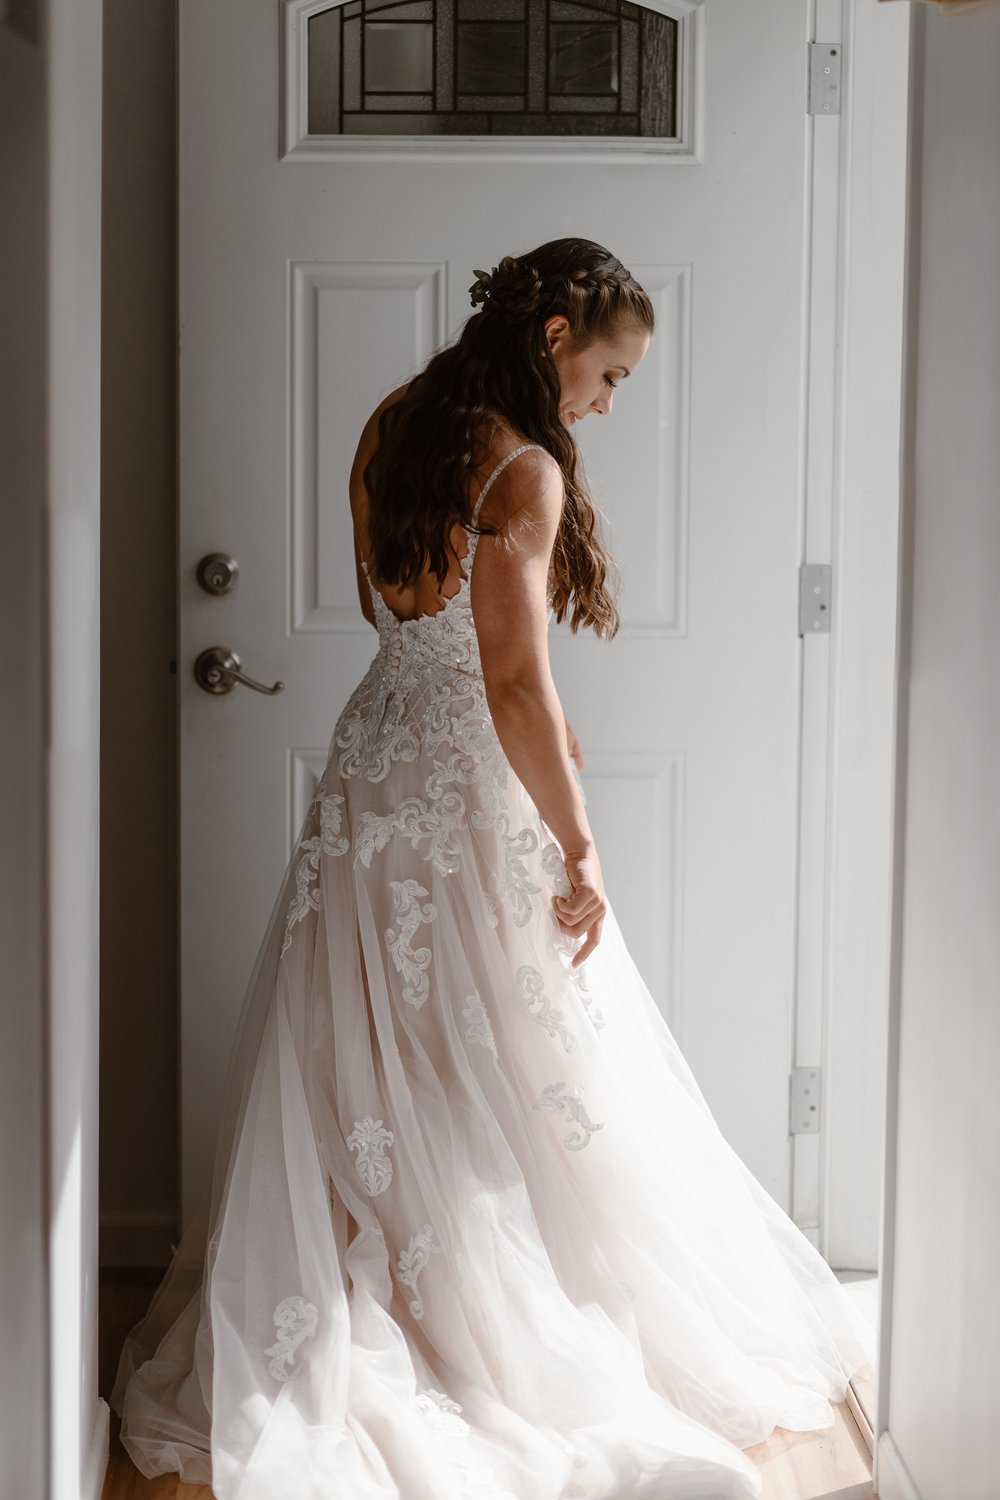 This image is a full-length view of the bride in her wedding dress before her Alaska destination wedding. The bride looks down toward the bottom of her white and champagne-colored wedding dress in this elopement photo taken by Adventure Instead, an elopement photographer.